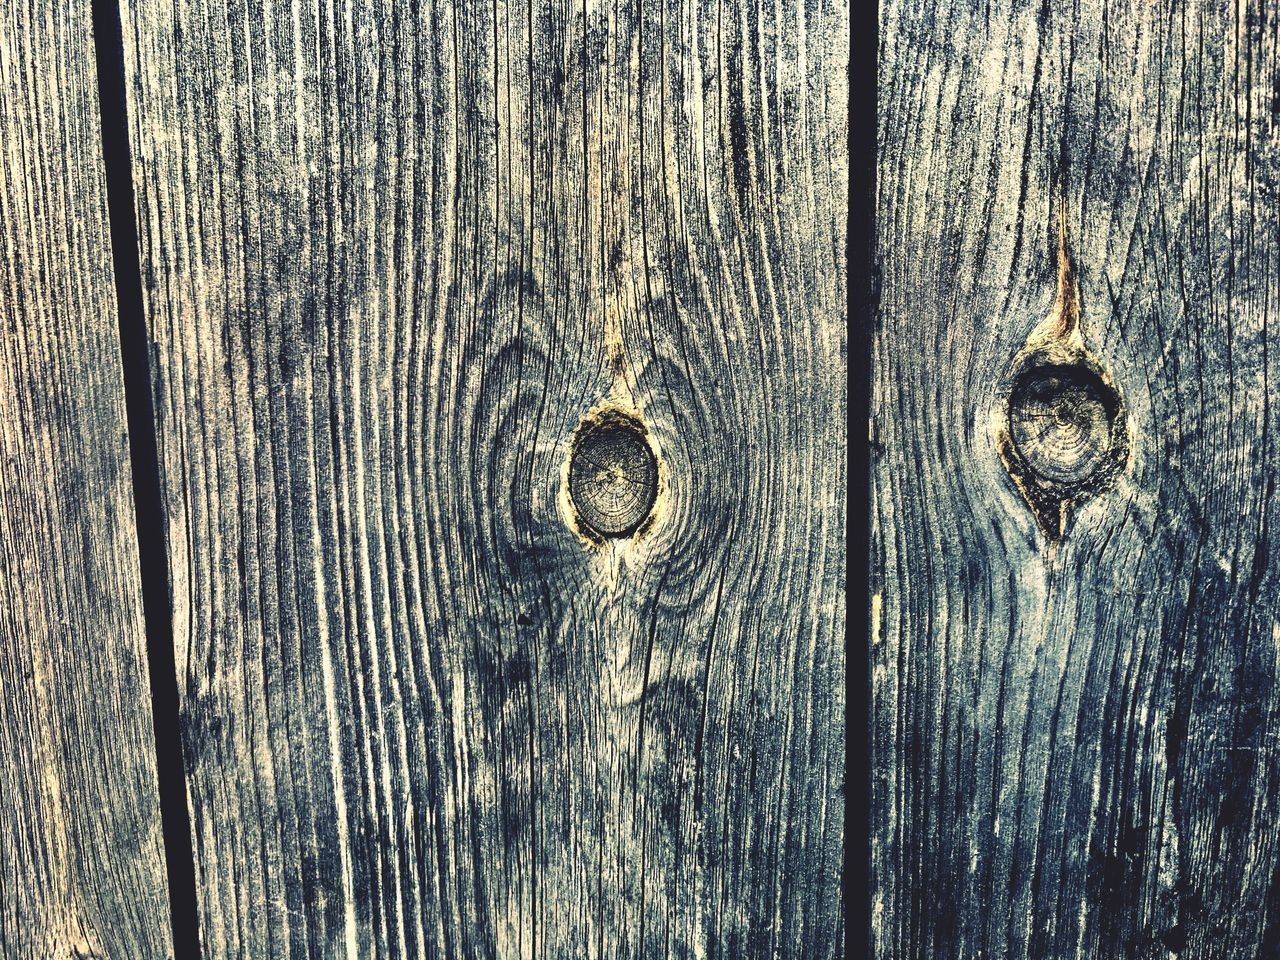 Just Wood Wood - Material Textured  Wood Grain Backgrounds Close-up Knotted Wood Old-fashioned Door Knot